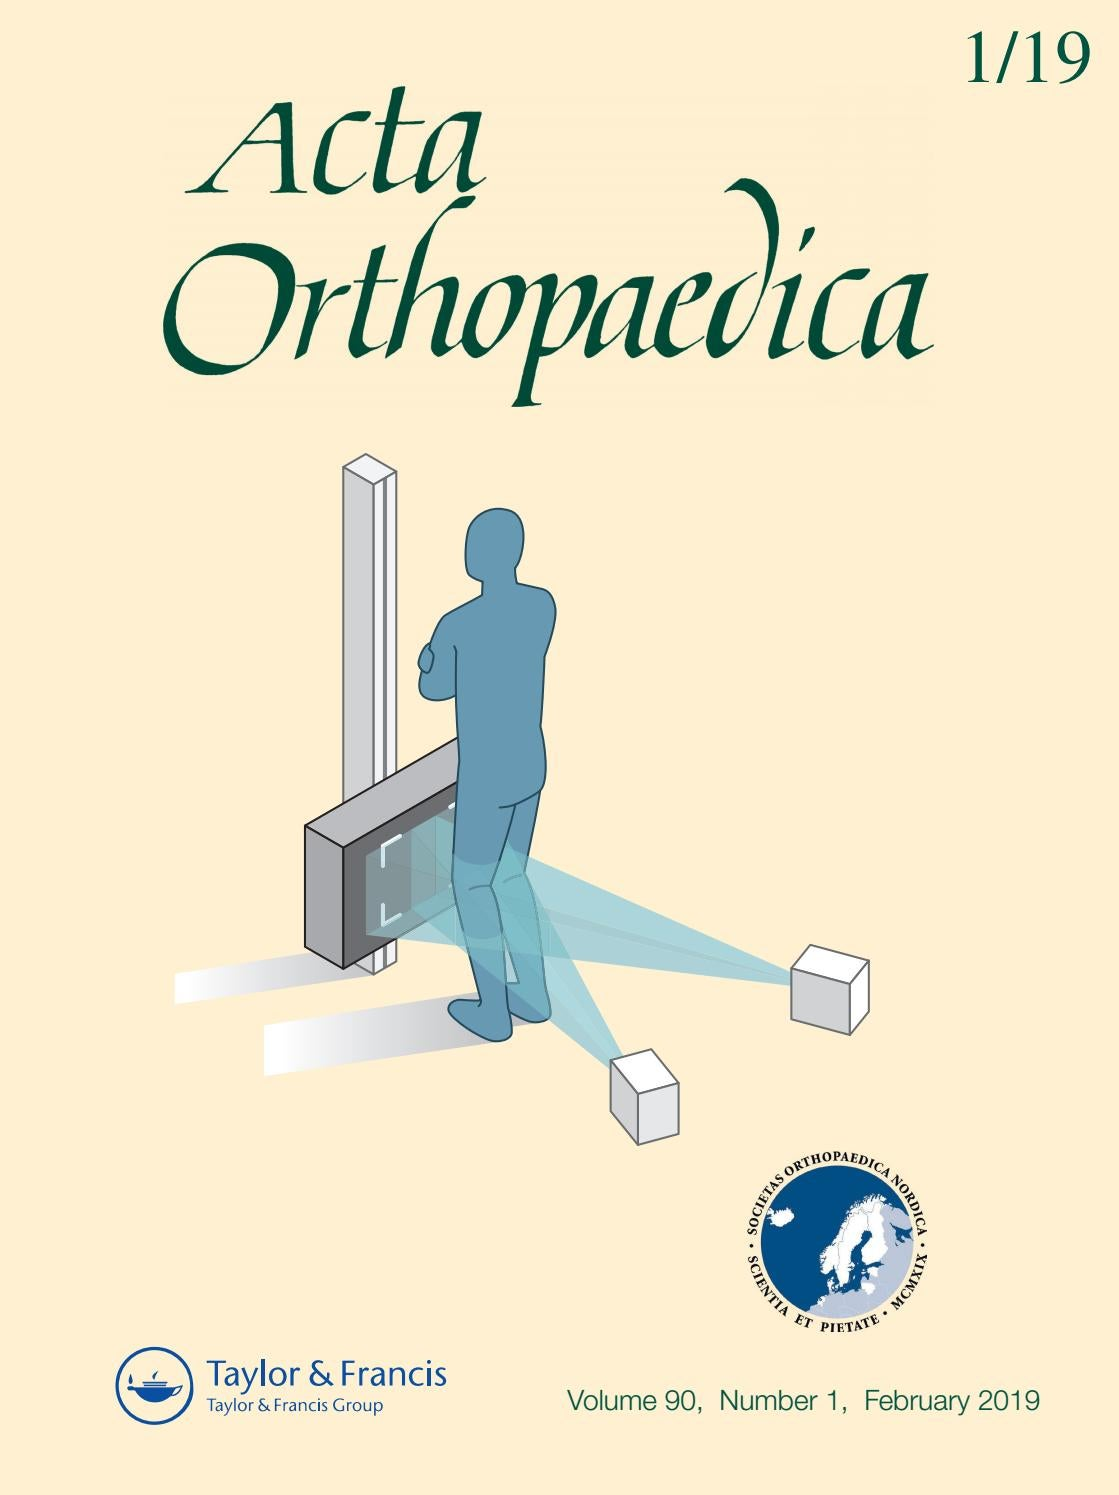 Acta Orthopaedica Vol 90 Issue 1 February 2019 By Acta Issuu